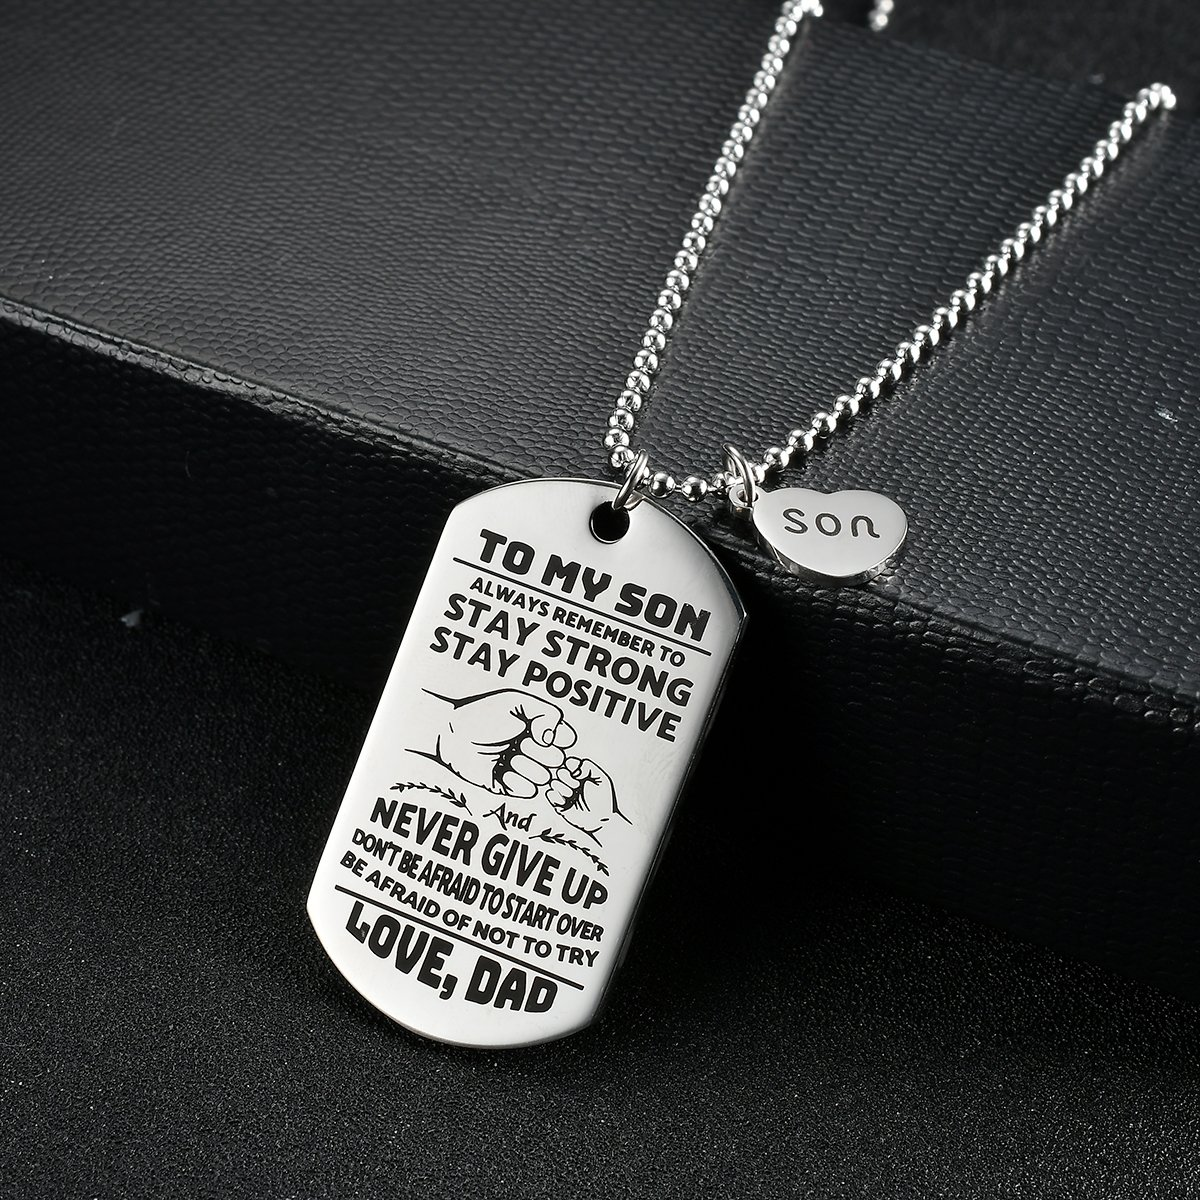 NOVLOVE To My Son from dad Never Forget That I Love Dad You Dog Tag Father Daddy Stay Positive Never Give Up Quotes Military Air Force Navy Necklace Gift Best Son Birthday Graduation by NOVLOVE (Image #3)